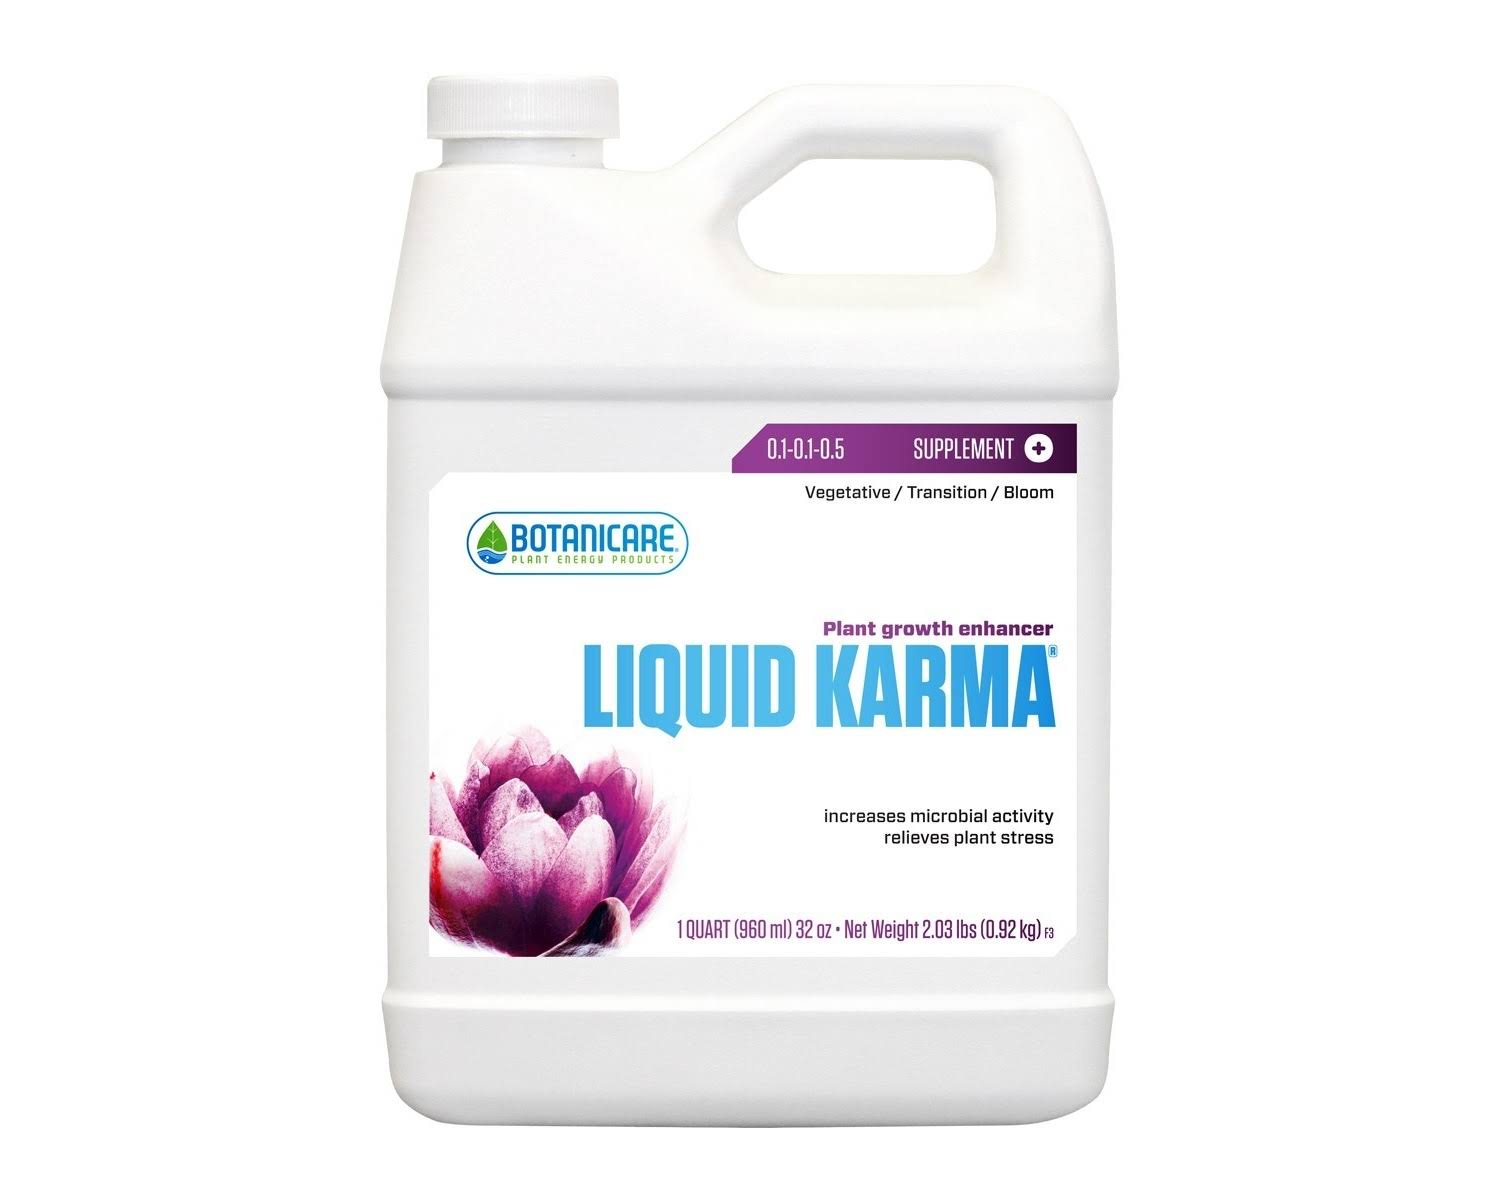 Botanicare Liquid Karma Plant Growth Enhancer Supplement 0.1-0.1-0.5 Formula - 1qt